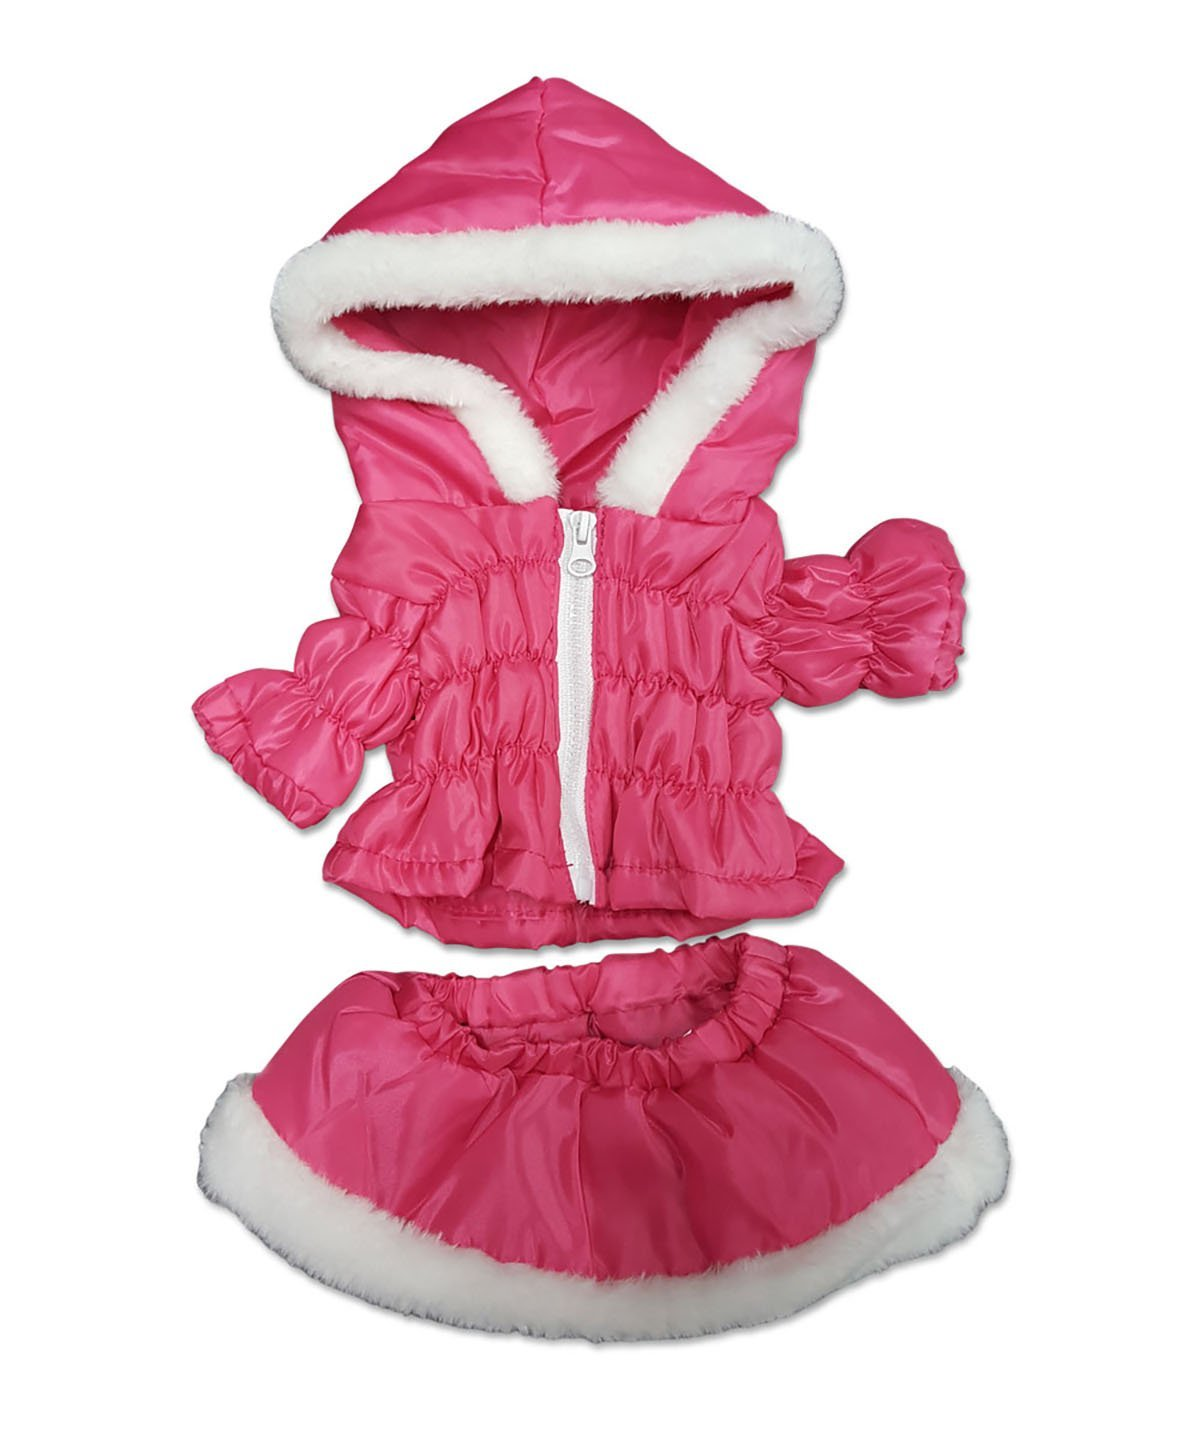 "Hot Pink Parka and Skirt Outfit Fits Most 14"" 18"" Build-a-bear, Vermont Teddy... by BF"